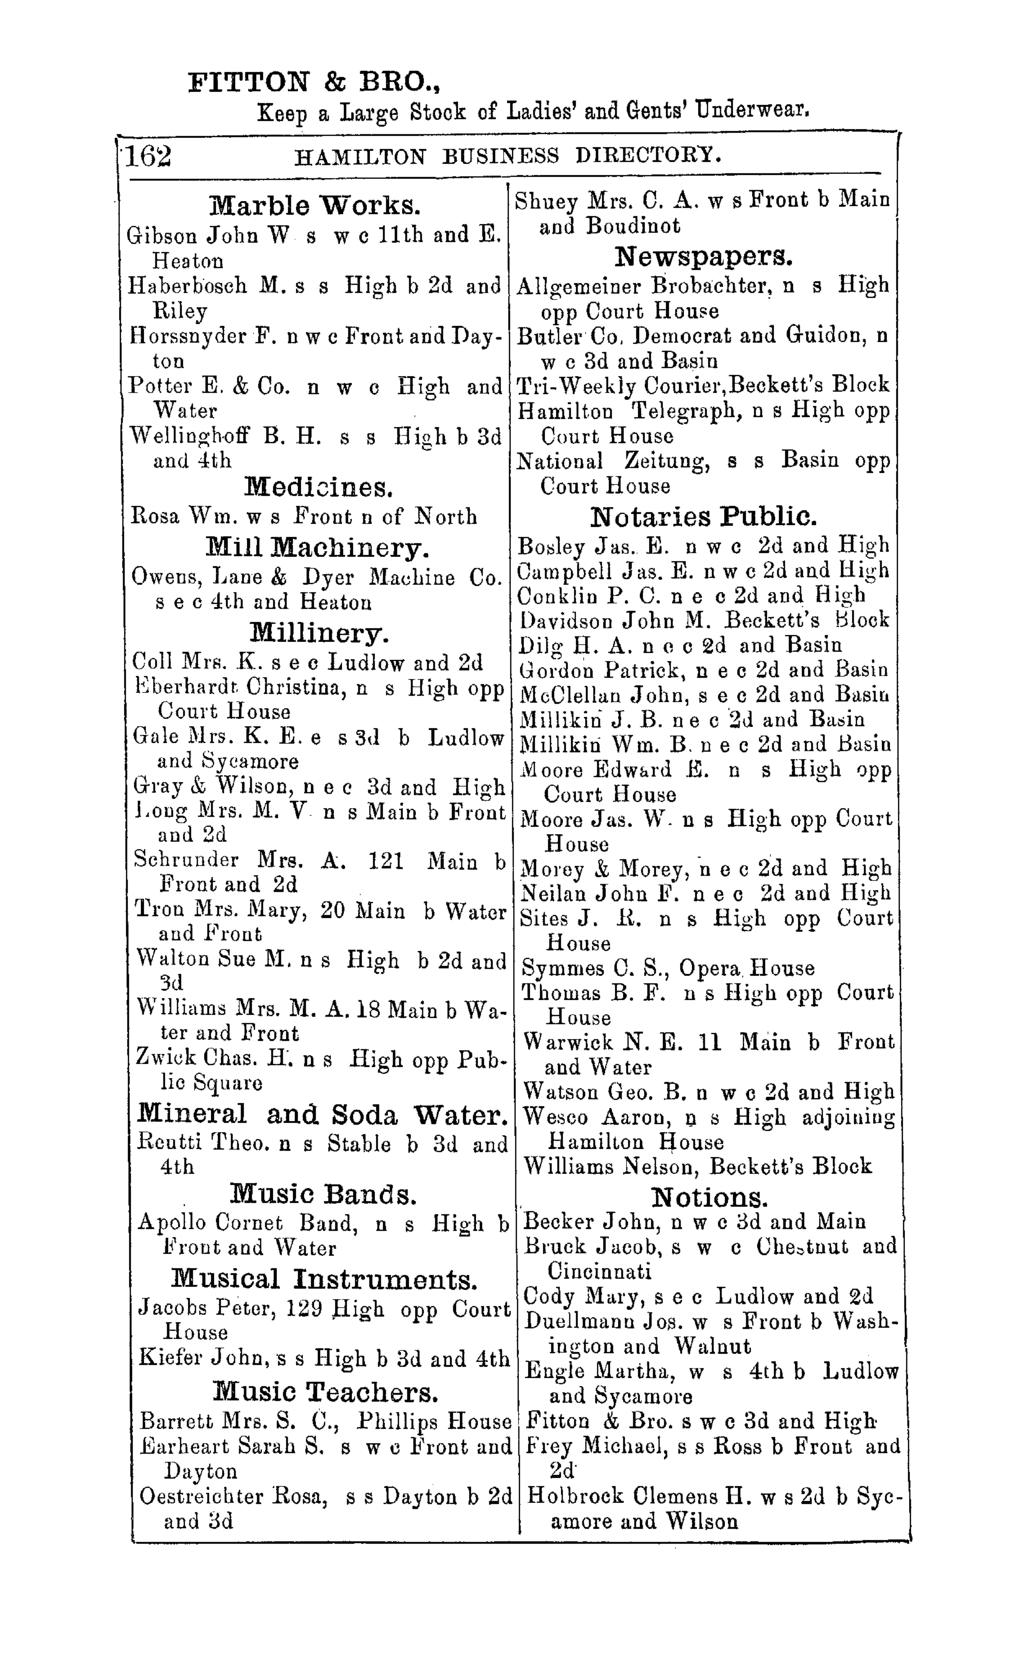 FITTON & BRO.,. '162 Keep a Large Stock of Ladies' and Gents' Underwear. HAMILTON BUSINESS DIRECTORY. r Marble Works. Shuey Mrs. O. A. w s Front b Main Gibson John Wsw c 11 th and E.